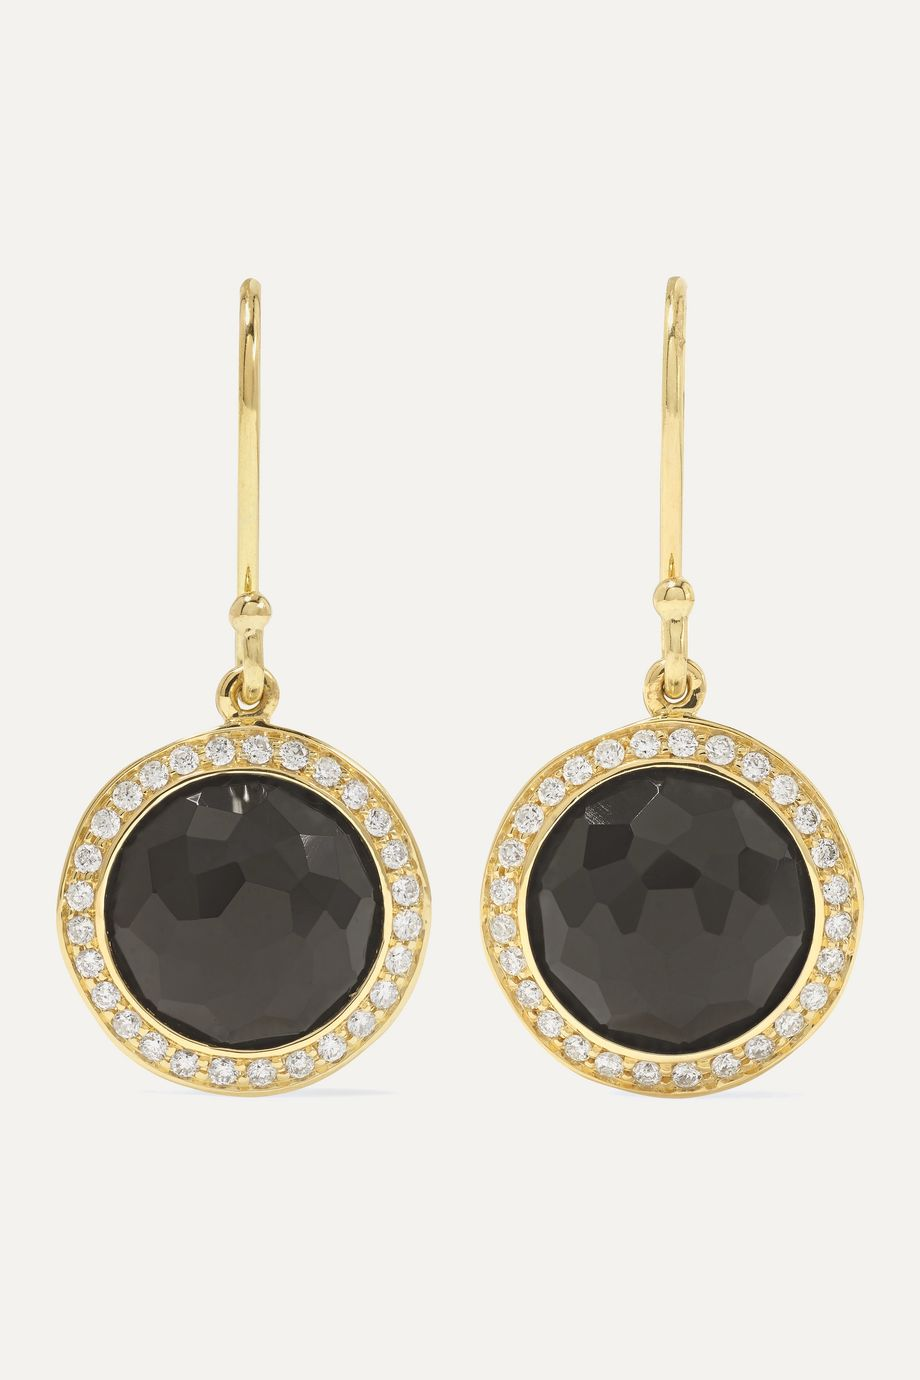 Ippolita Boucles d'oreilles en or 18 carats, onyx et diamants Lollipop